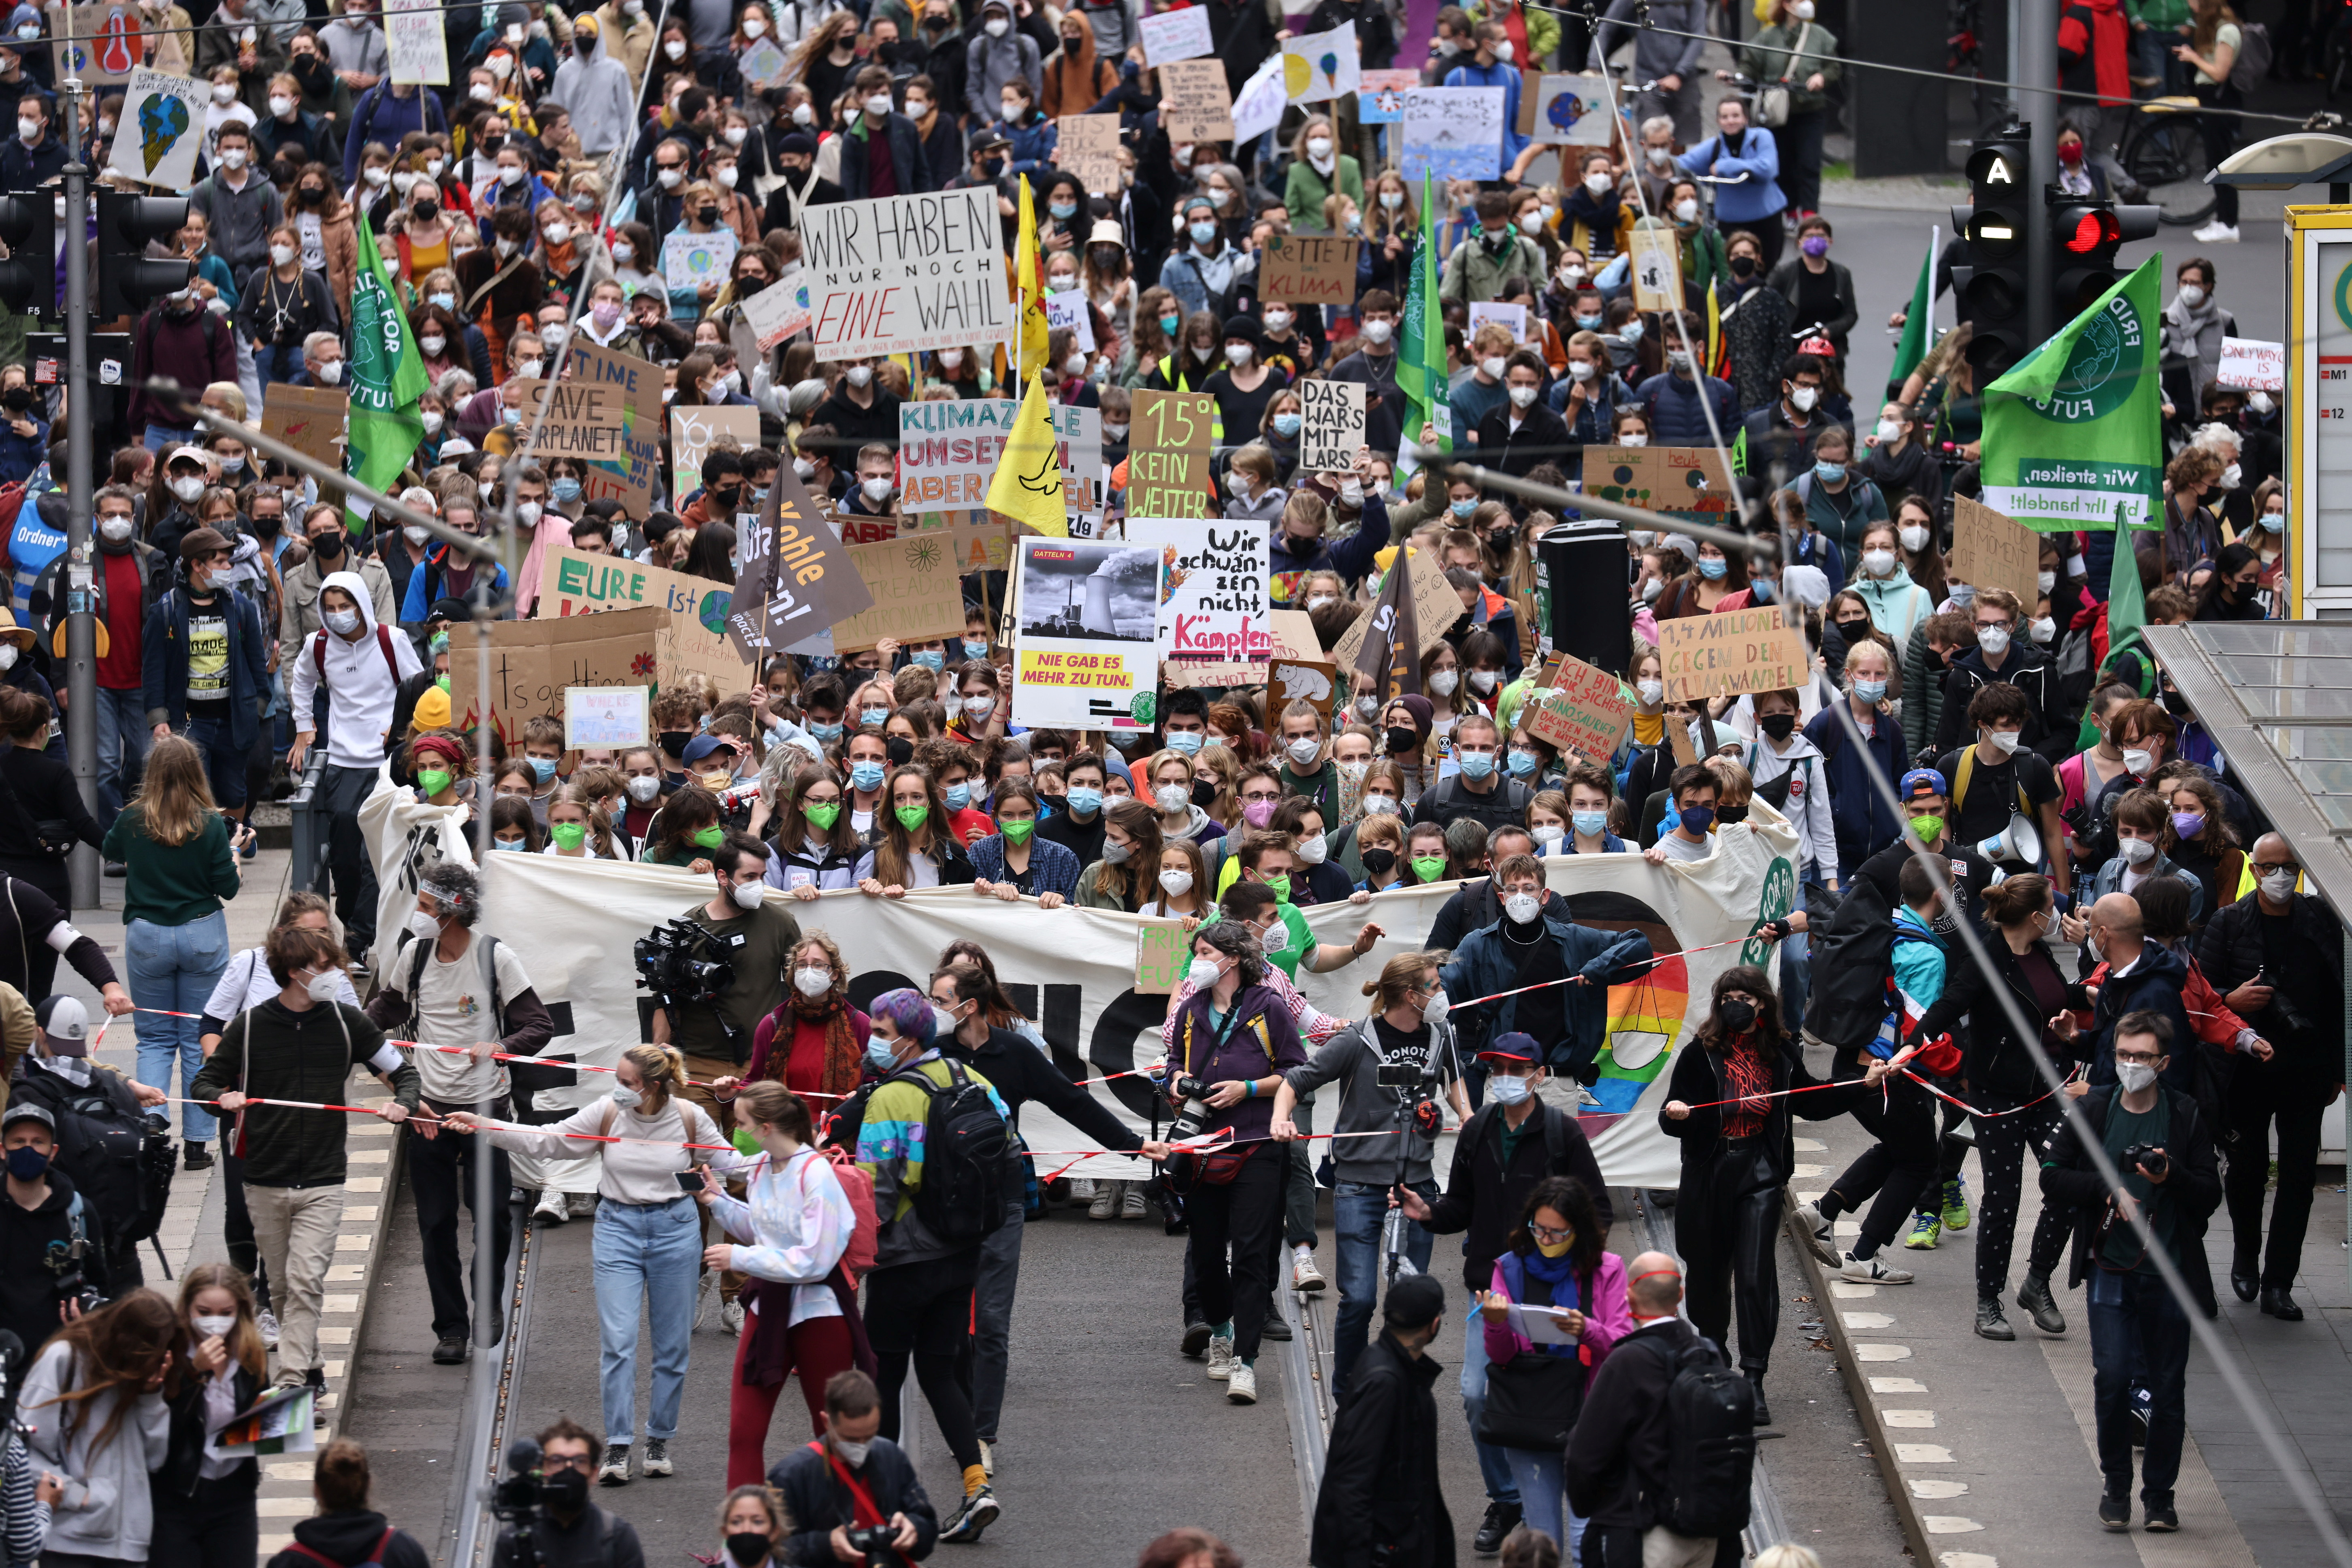 People take part in the Global Climate Strike of the movement Fridays for Future in Berlin, Germany, September 24, 2021. REUTERS/Christian Mang